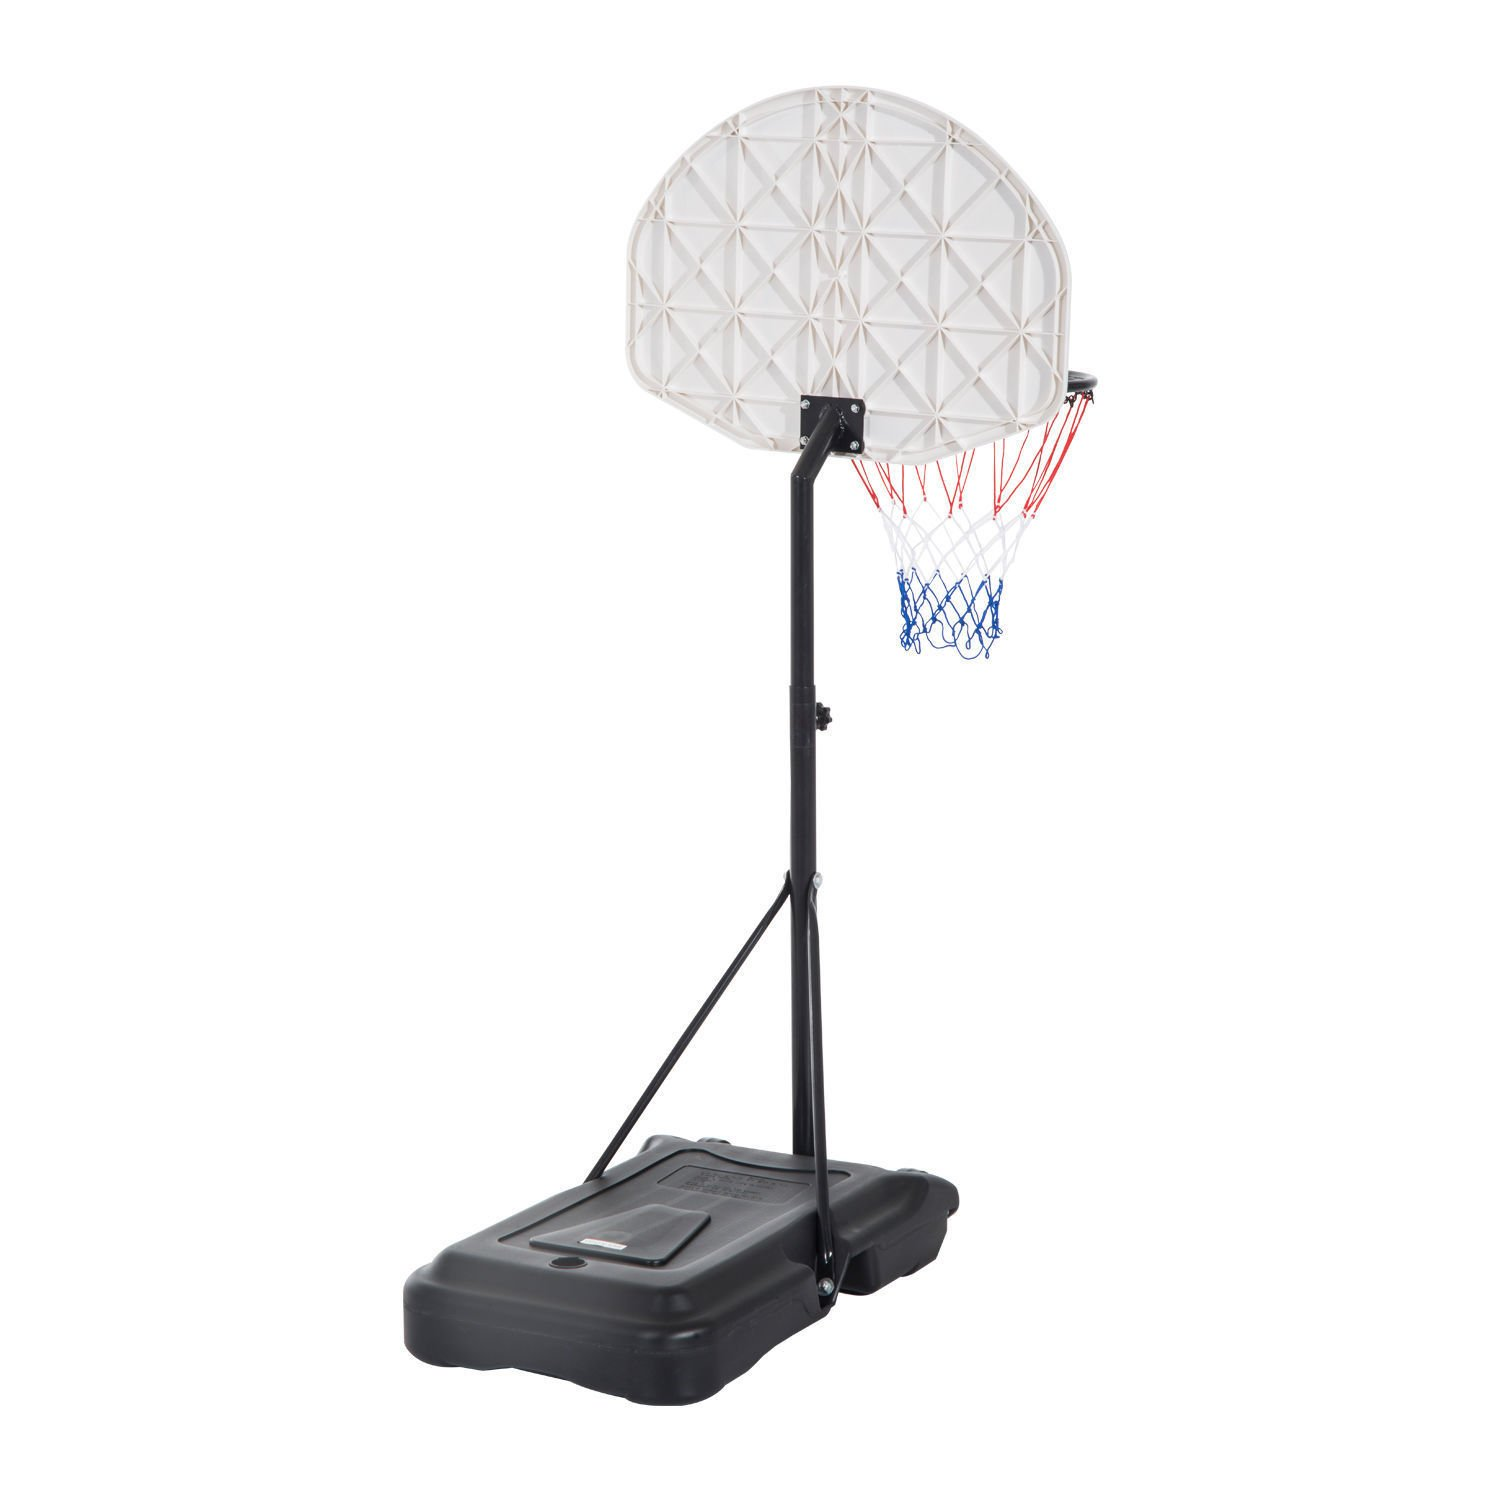 Poolside Basketball Hoop System Pool Water Sport Game Play Outdoor Adjustable by SpiritOne (Image #5)